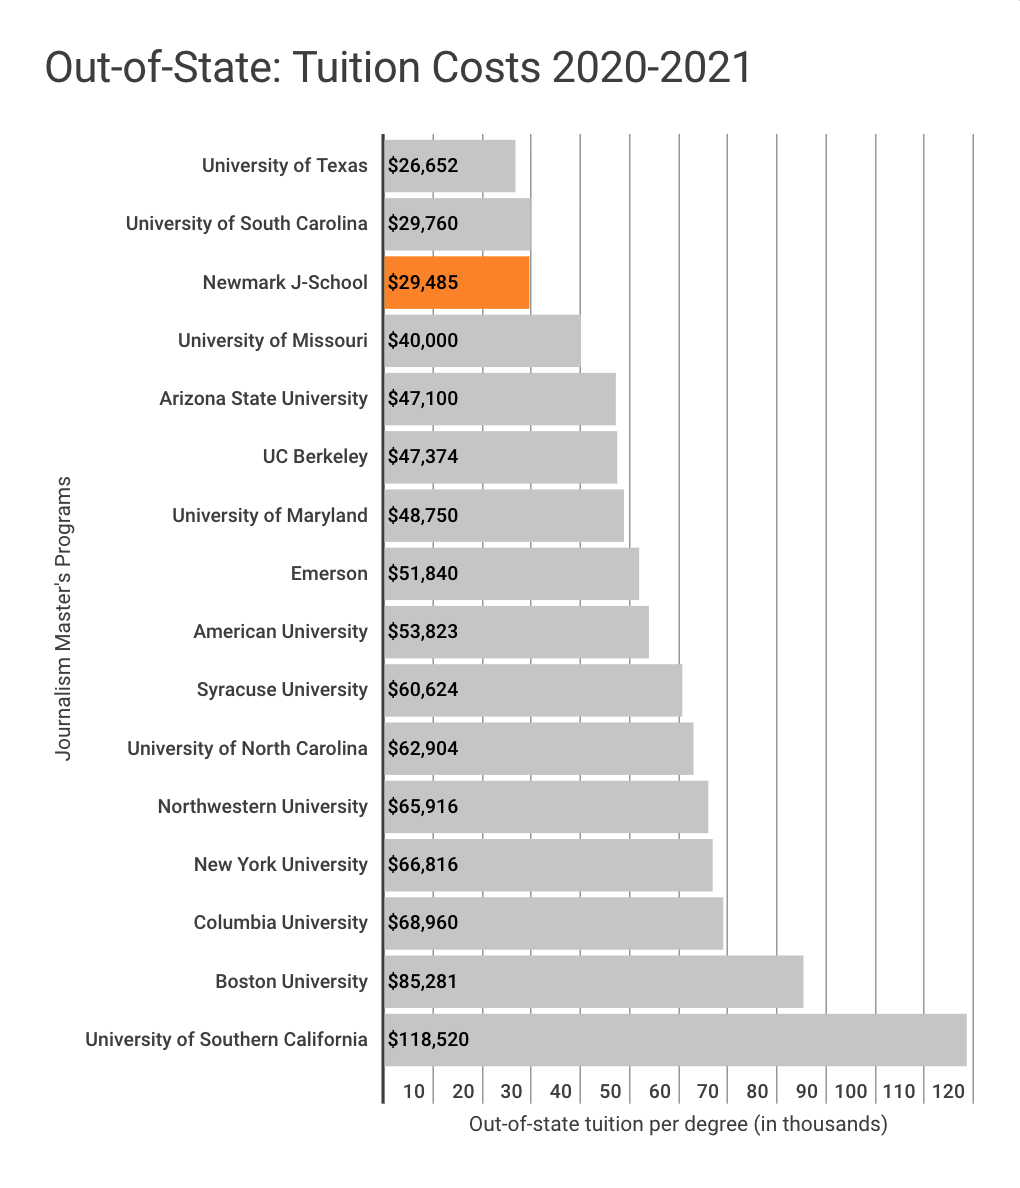 Tuition comparison chart for out-of-state students in 2020-2021 academic year. This chart shows that the Craig Newmark Graduate School of Journalism's out-of-state tuition of $29,485 is the third lowest among 16 of the most popular journalism graduate programs in the United States. The University of Texas has the lowest out-of-state tuition at $26,652 followed by the University of South Carolina at $29,760. The highest out-of-state tuition shown in this chart corresponds to The University of Southern California at $118,520.